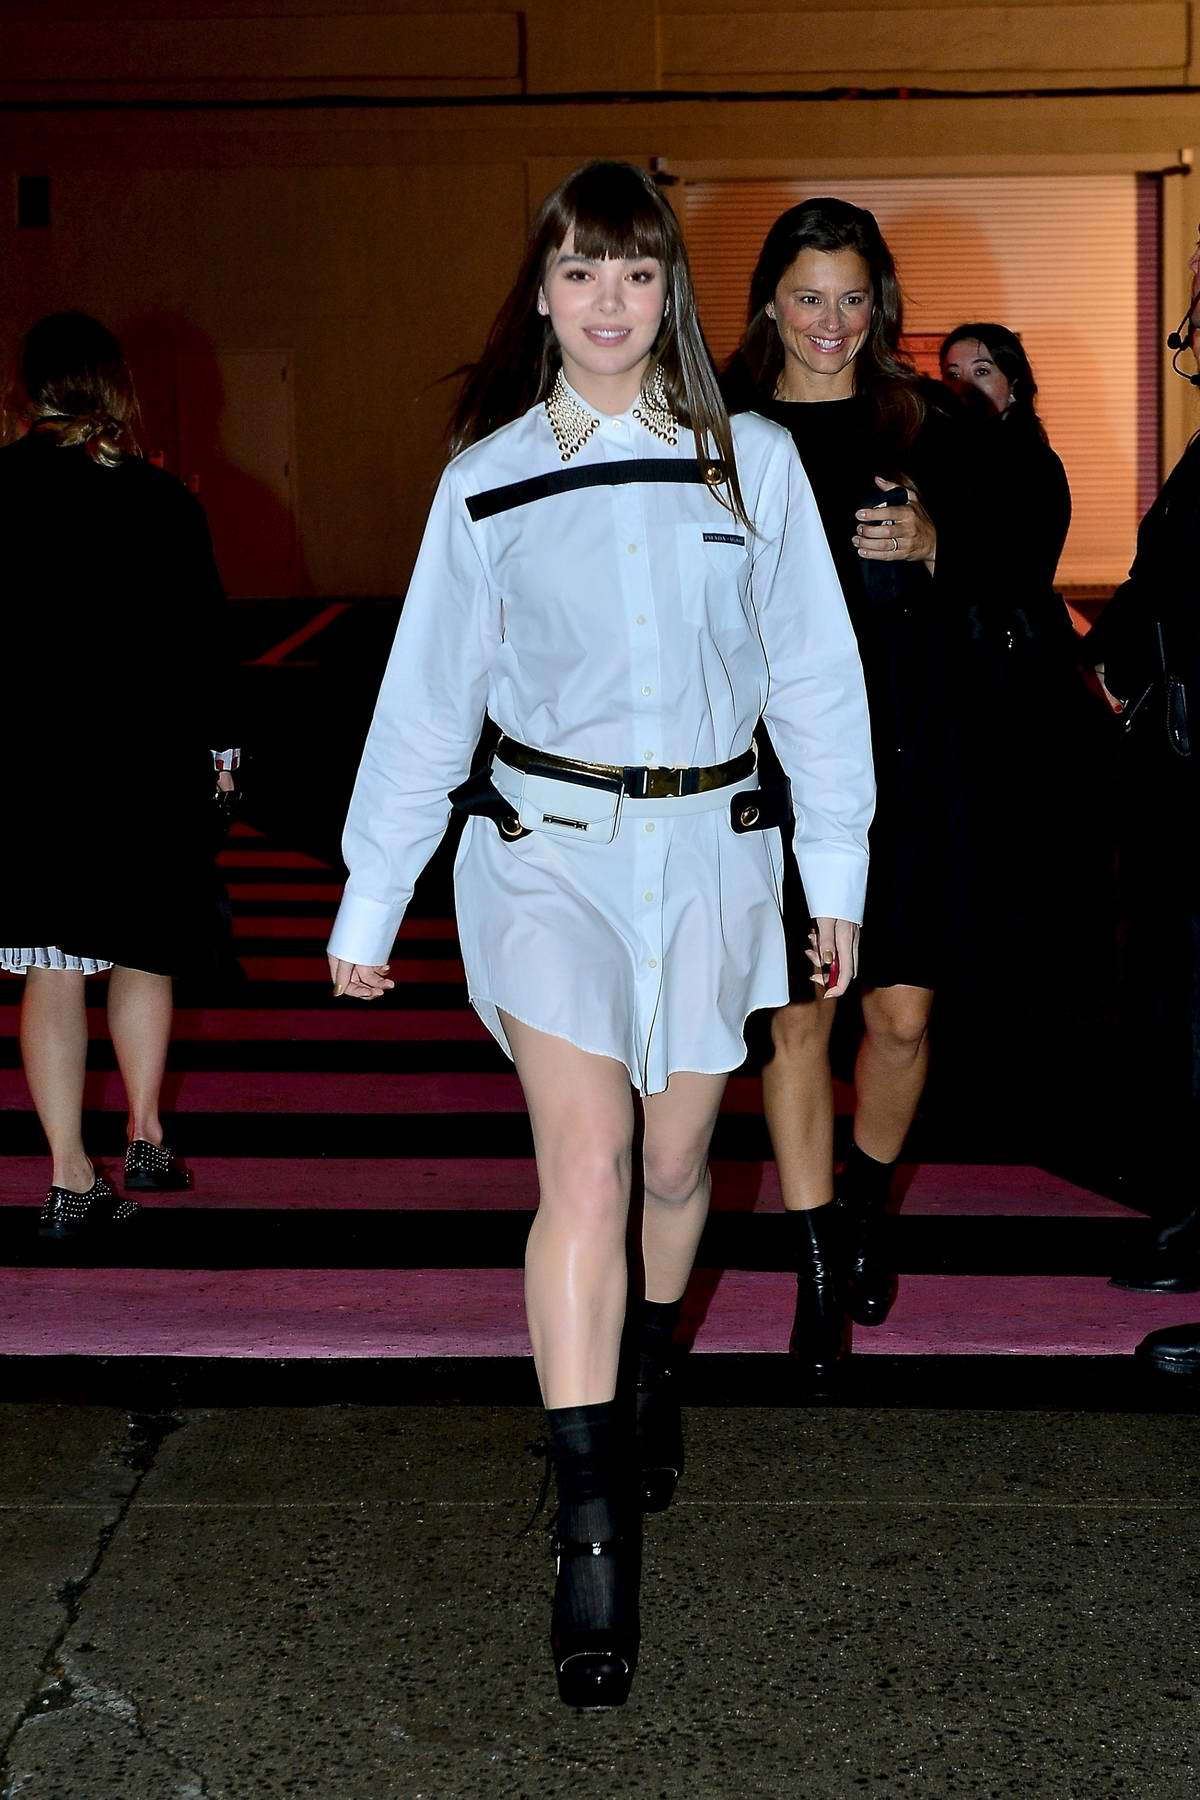 Hailee Steinfeld attends the Prada Resort 2020 fashion show at Prada Headquarters in New York City